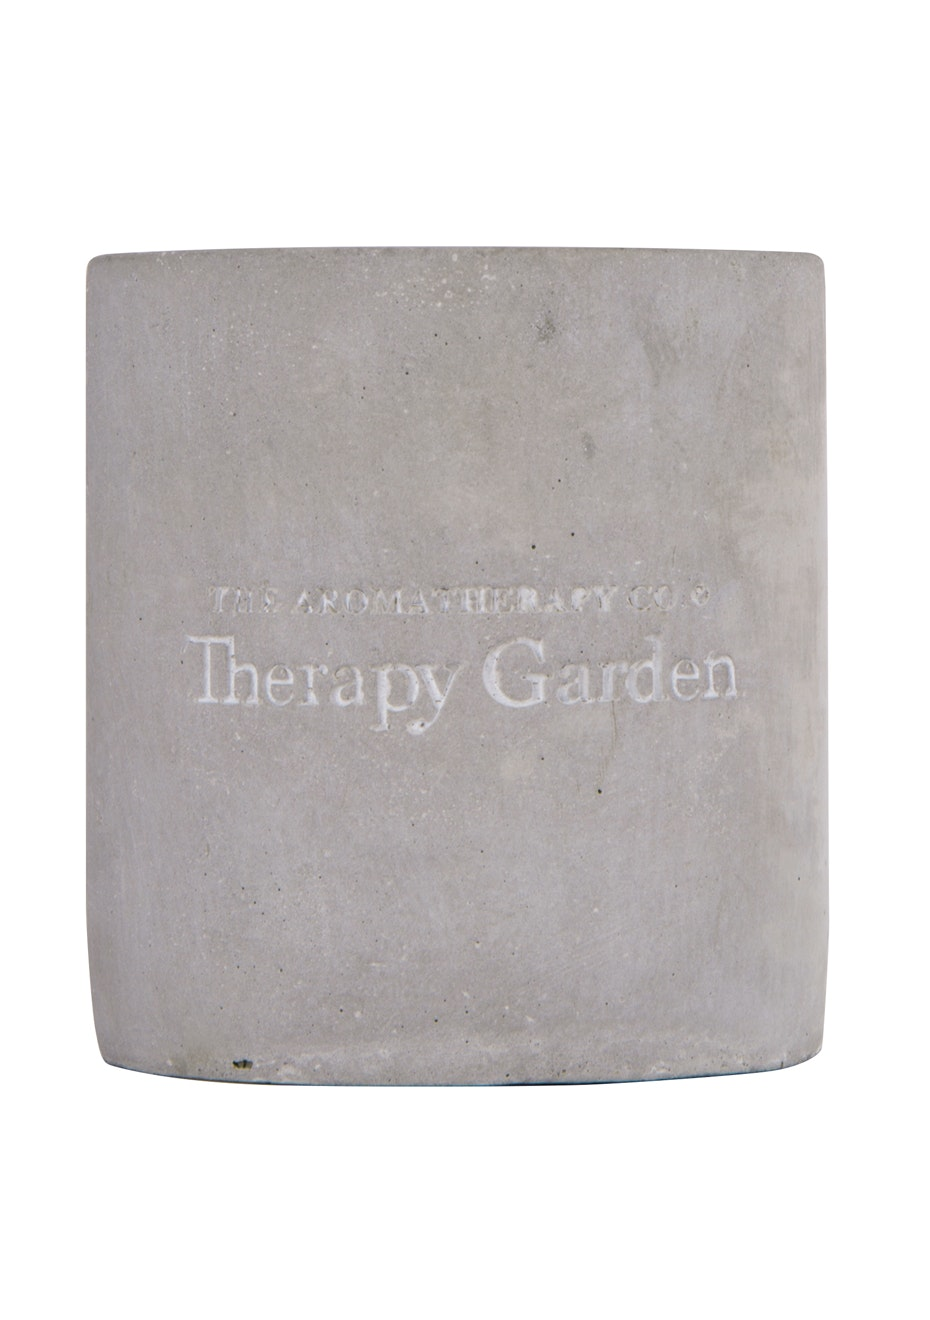 The Aromatherapy Co. Therapy Garden Citronella Candle